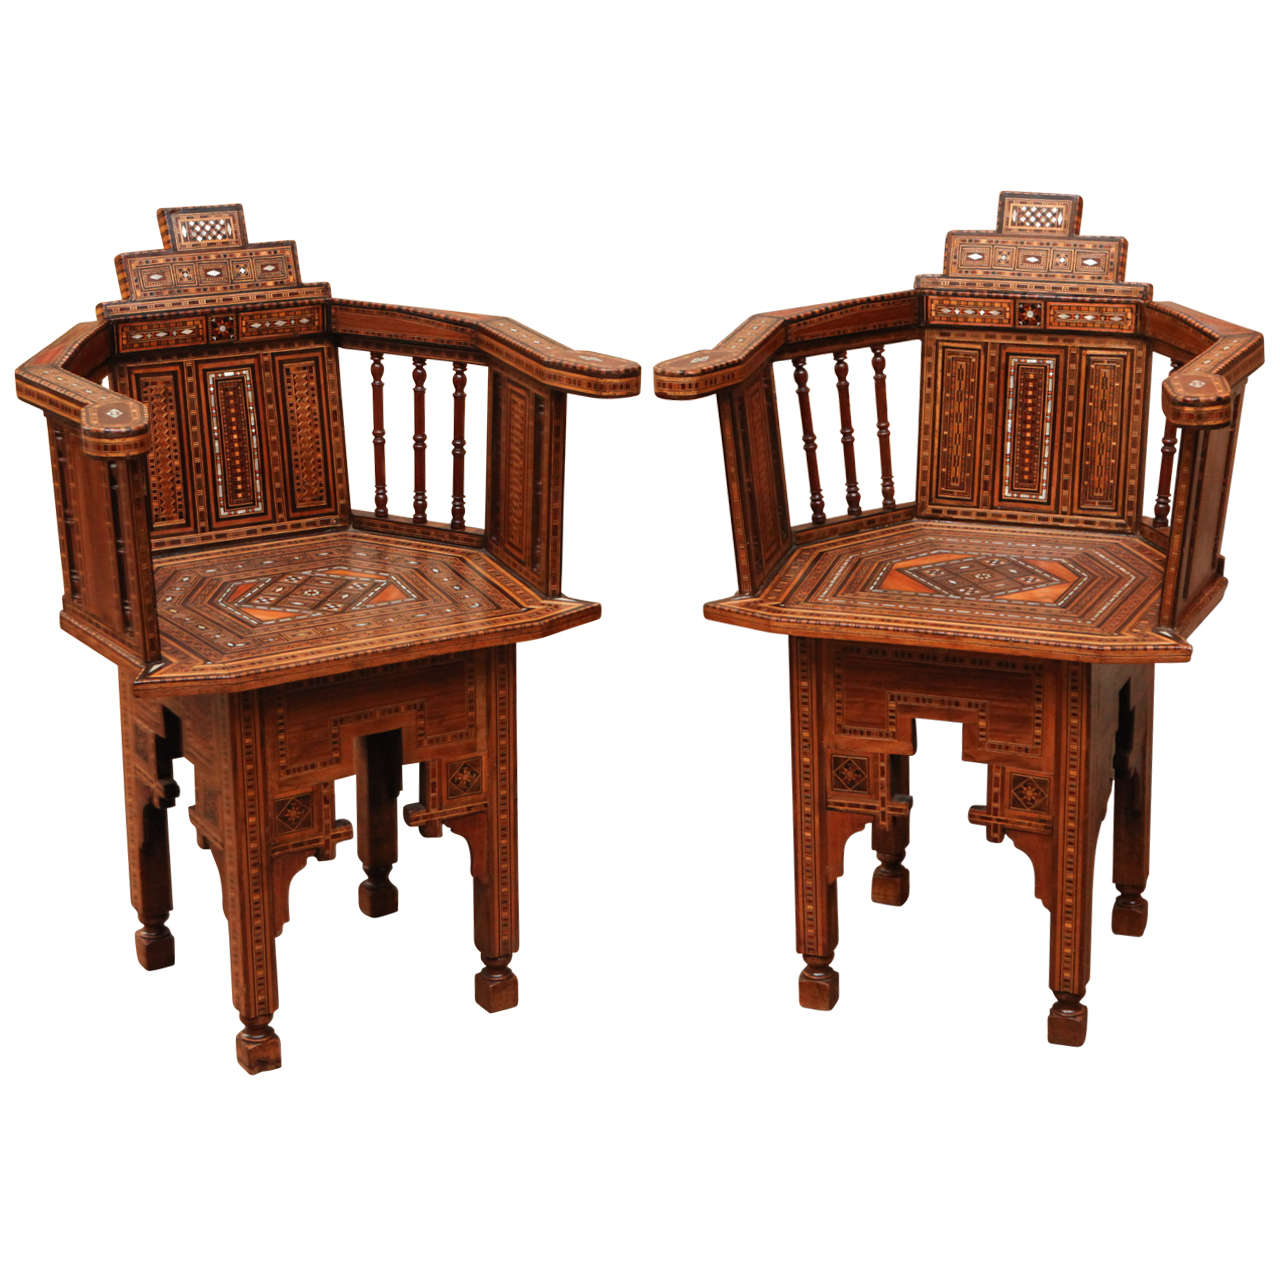 cheap moroccan furniture. Pair Of Mother-of-Pearl Inlay Moroccan Chairs For Sale Cheap Furniture I